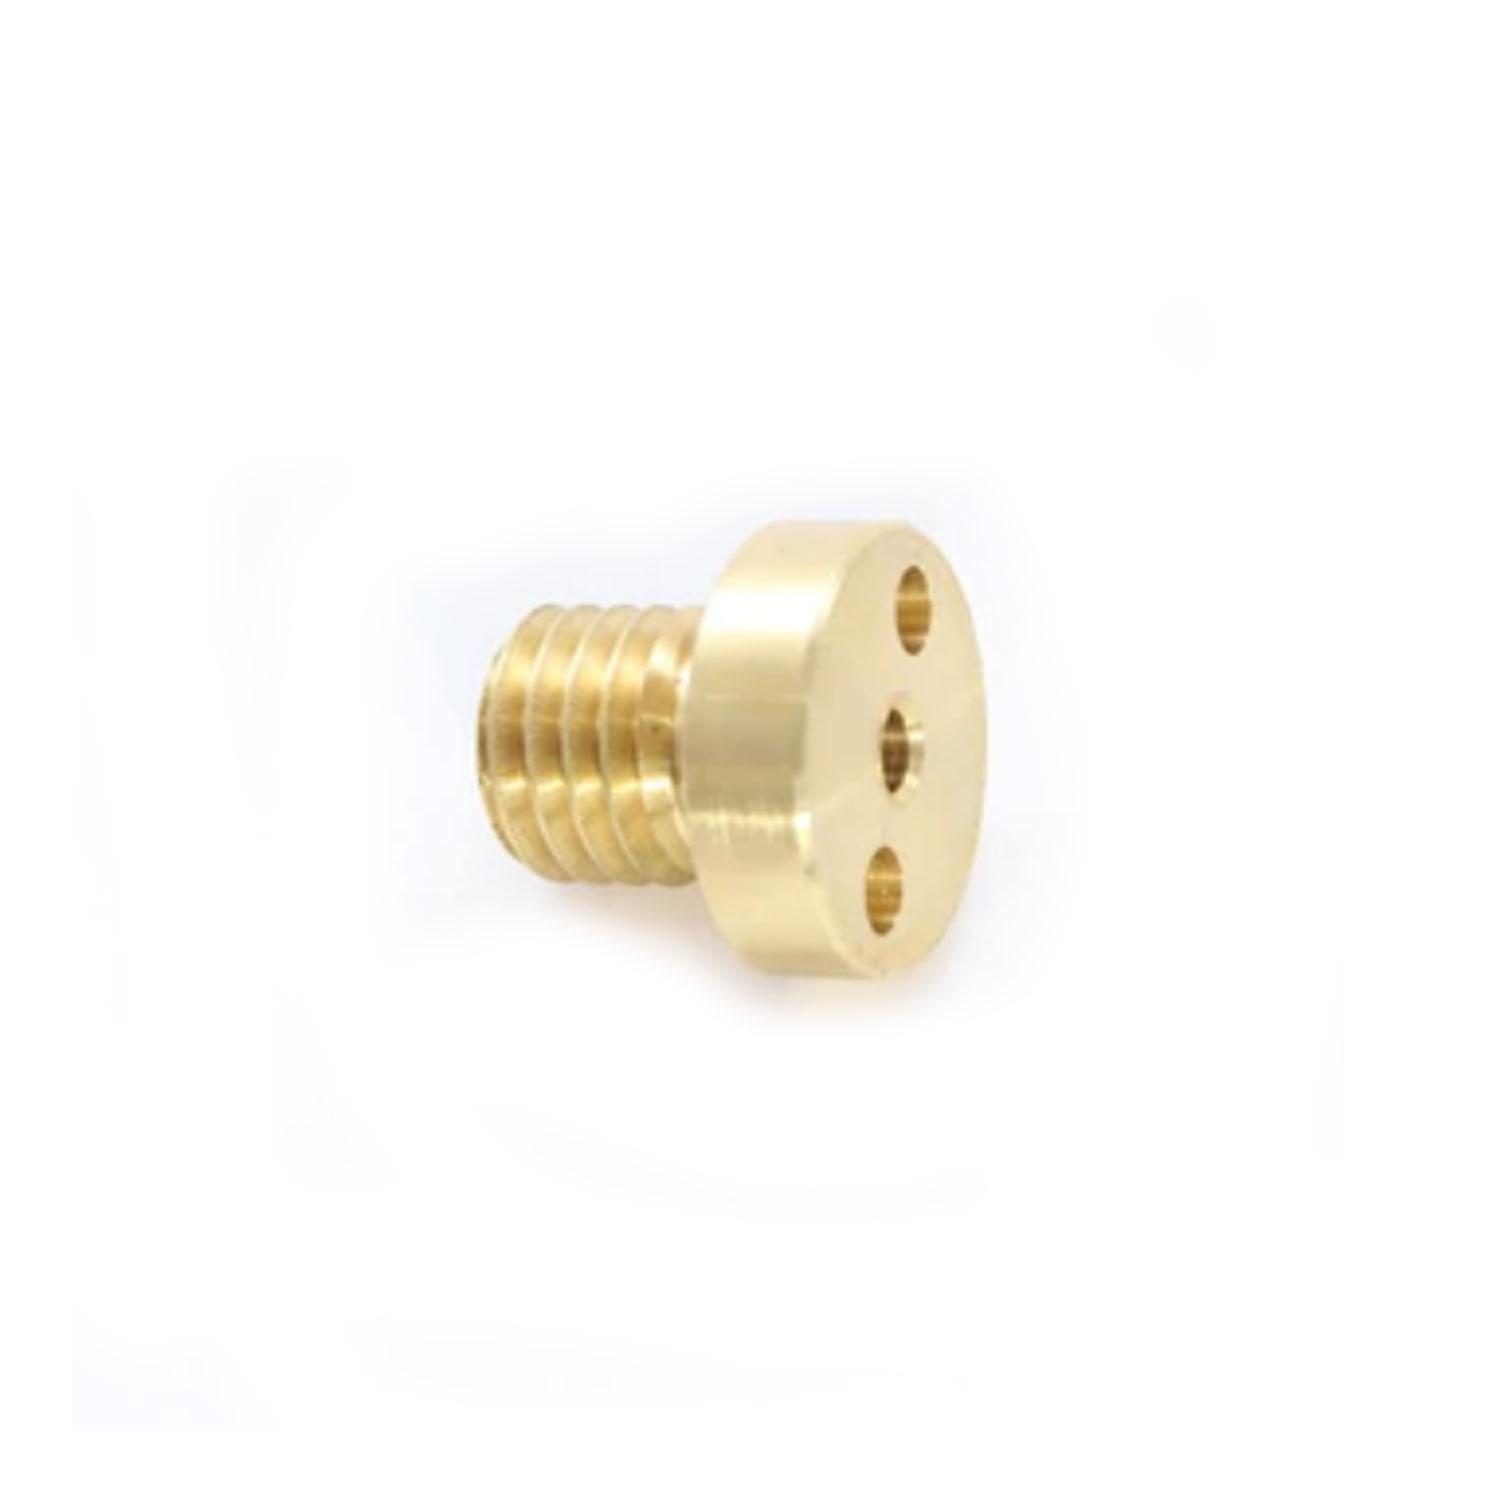 Covington Brass Centering Pin with Coolant Hole